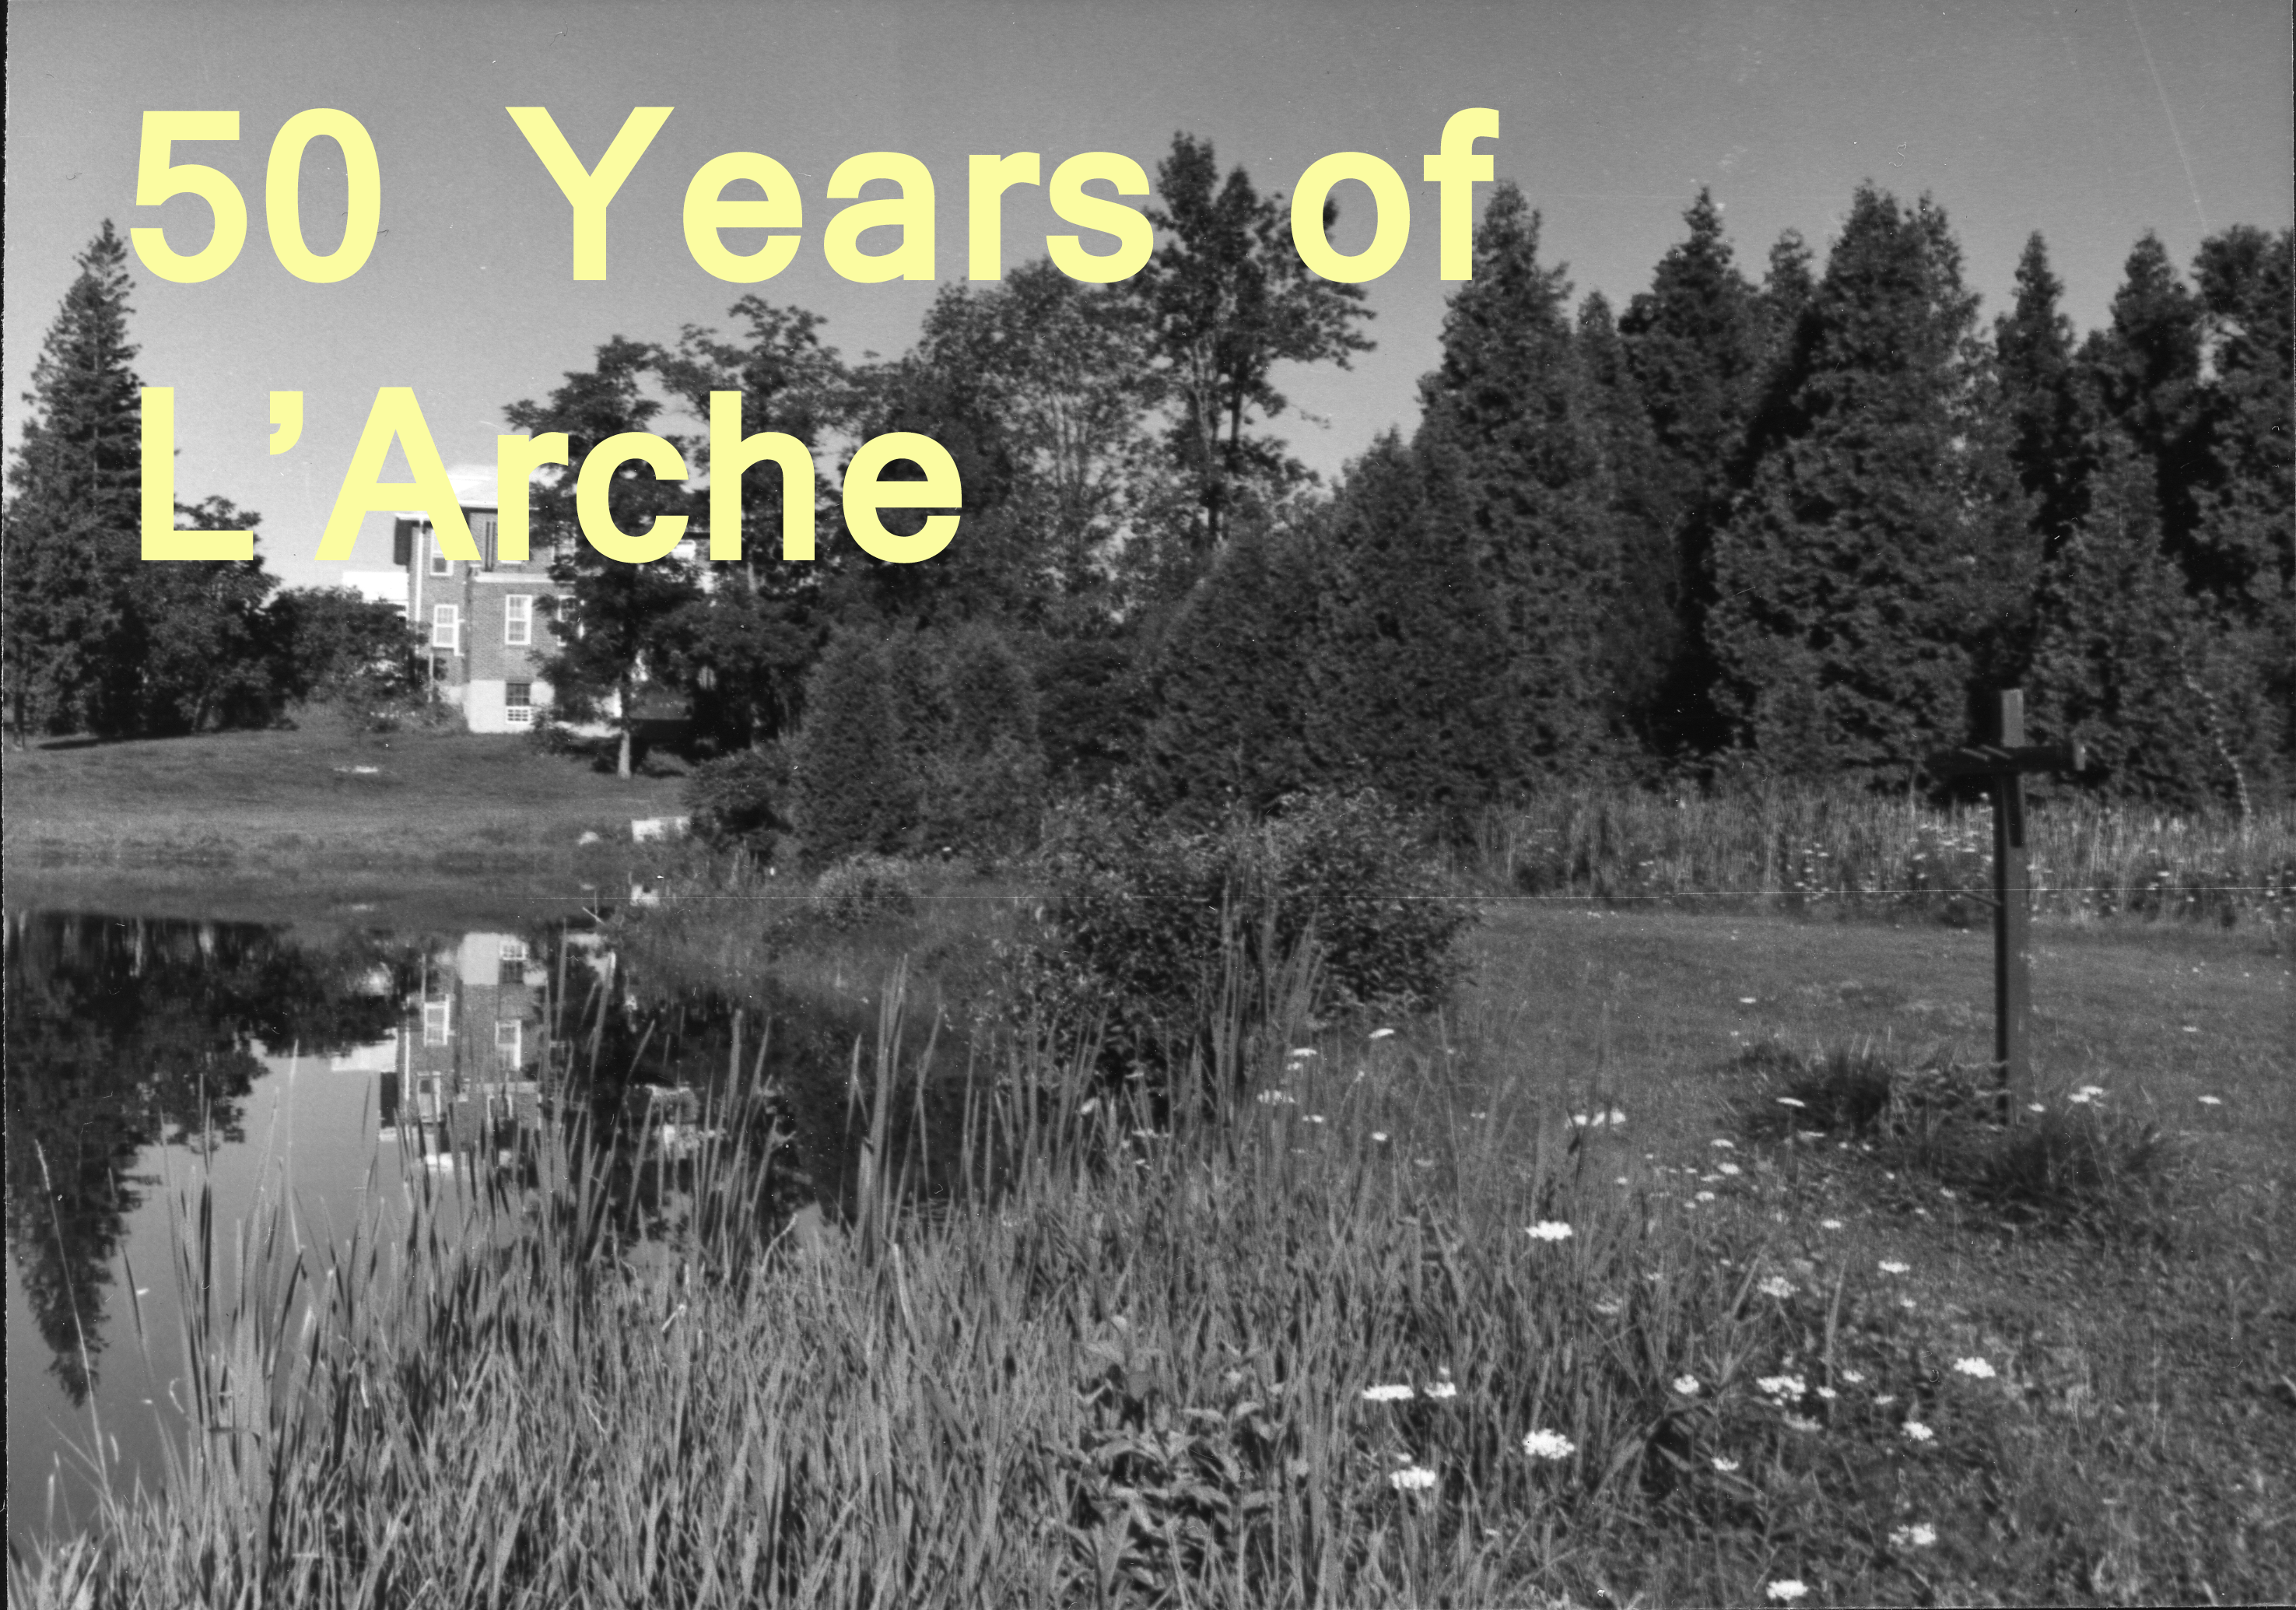 Exhibit: 50 Years of L'Arche